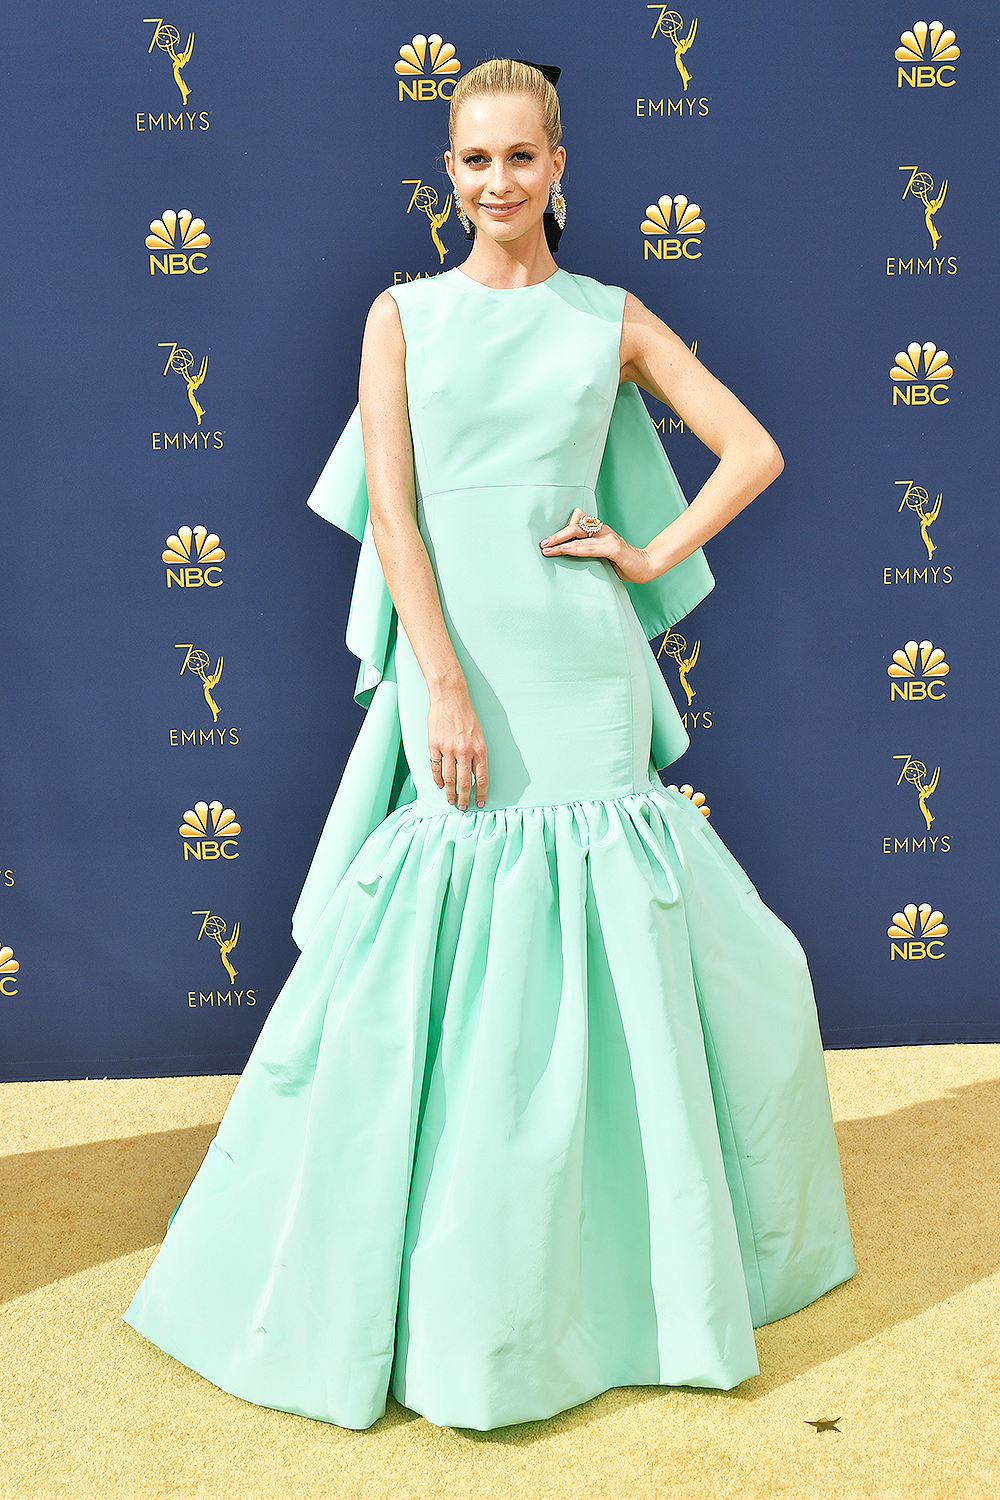 2018 Best Dressed Emmys I Poppy Delevingne in Giambattista Valli #BestDressed #Emmys #RedCarpet #Fashionista